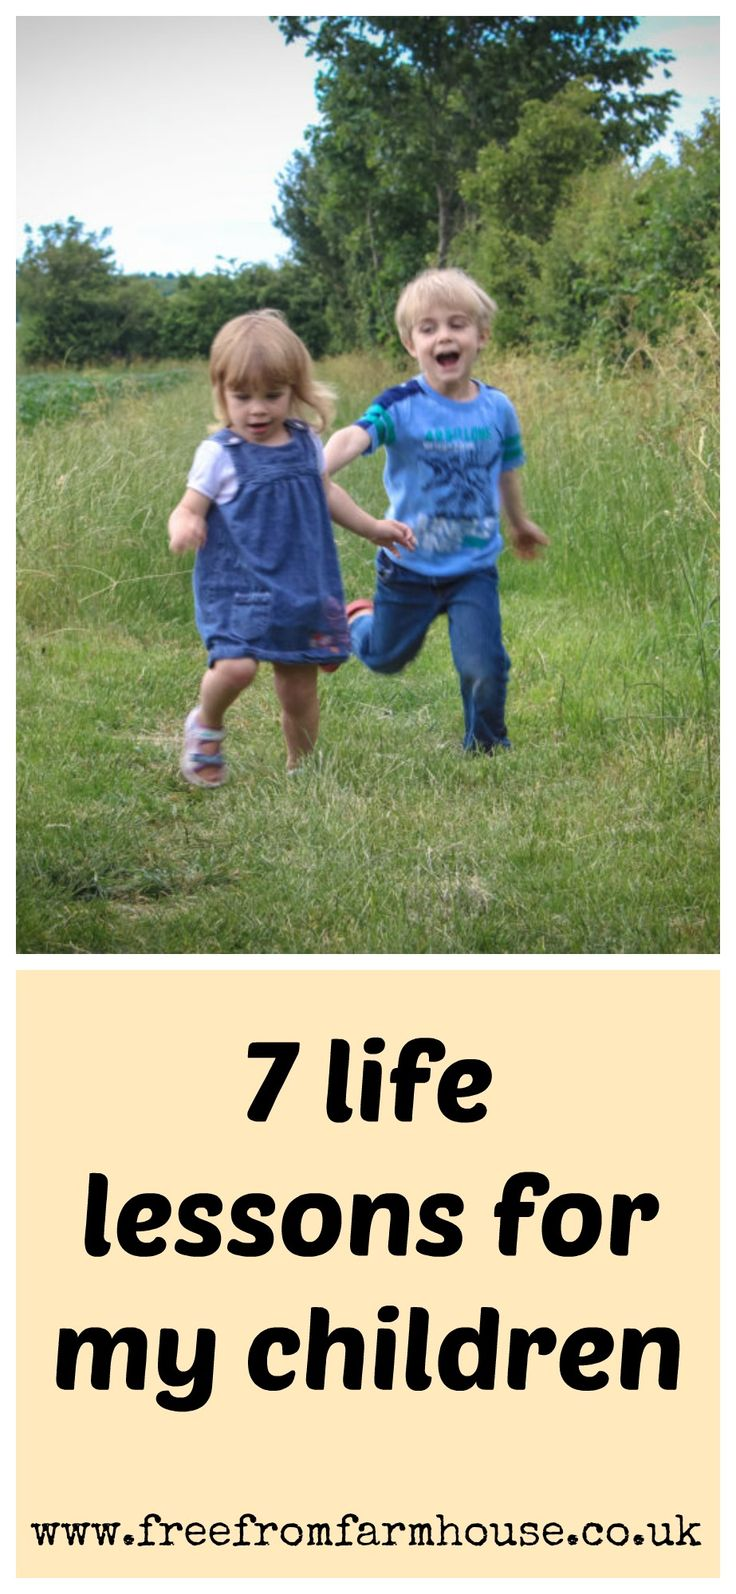 7 life lessons to help your children navigate life well